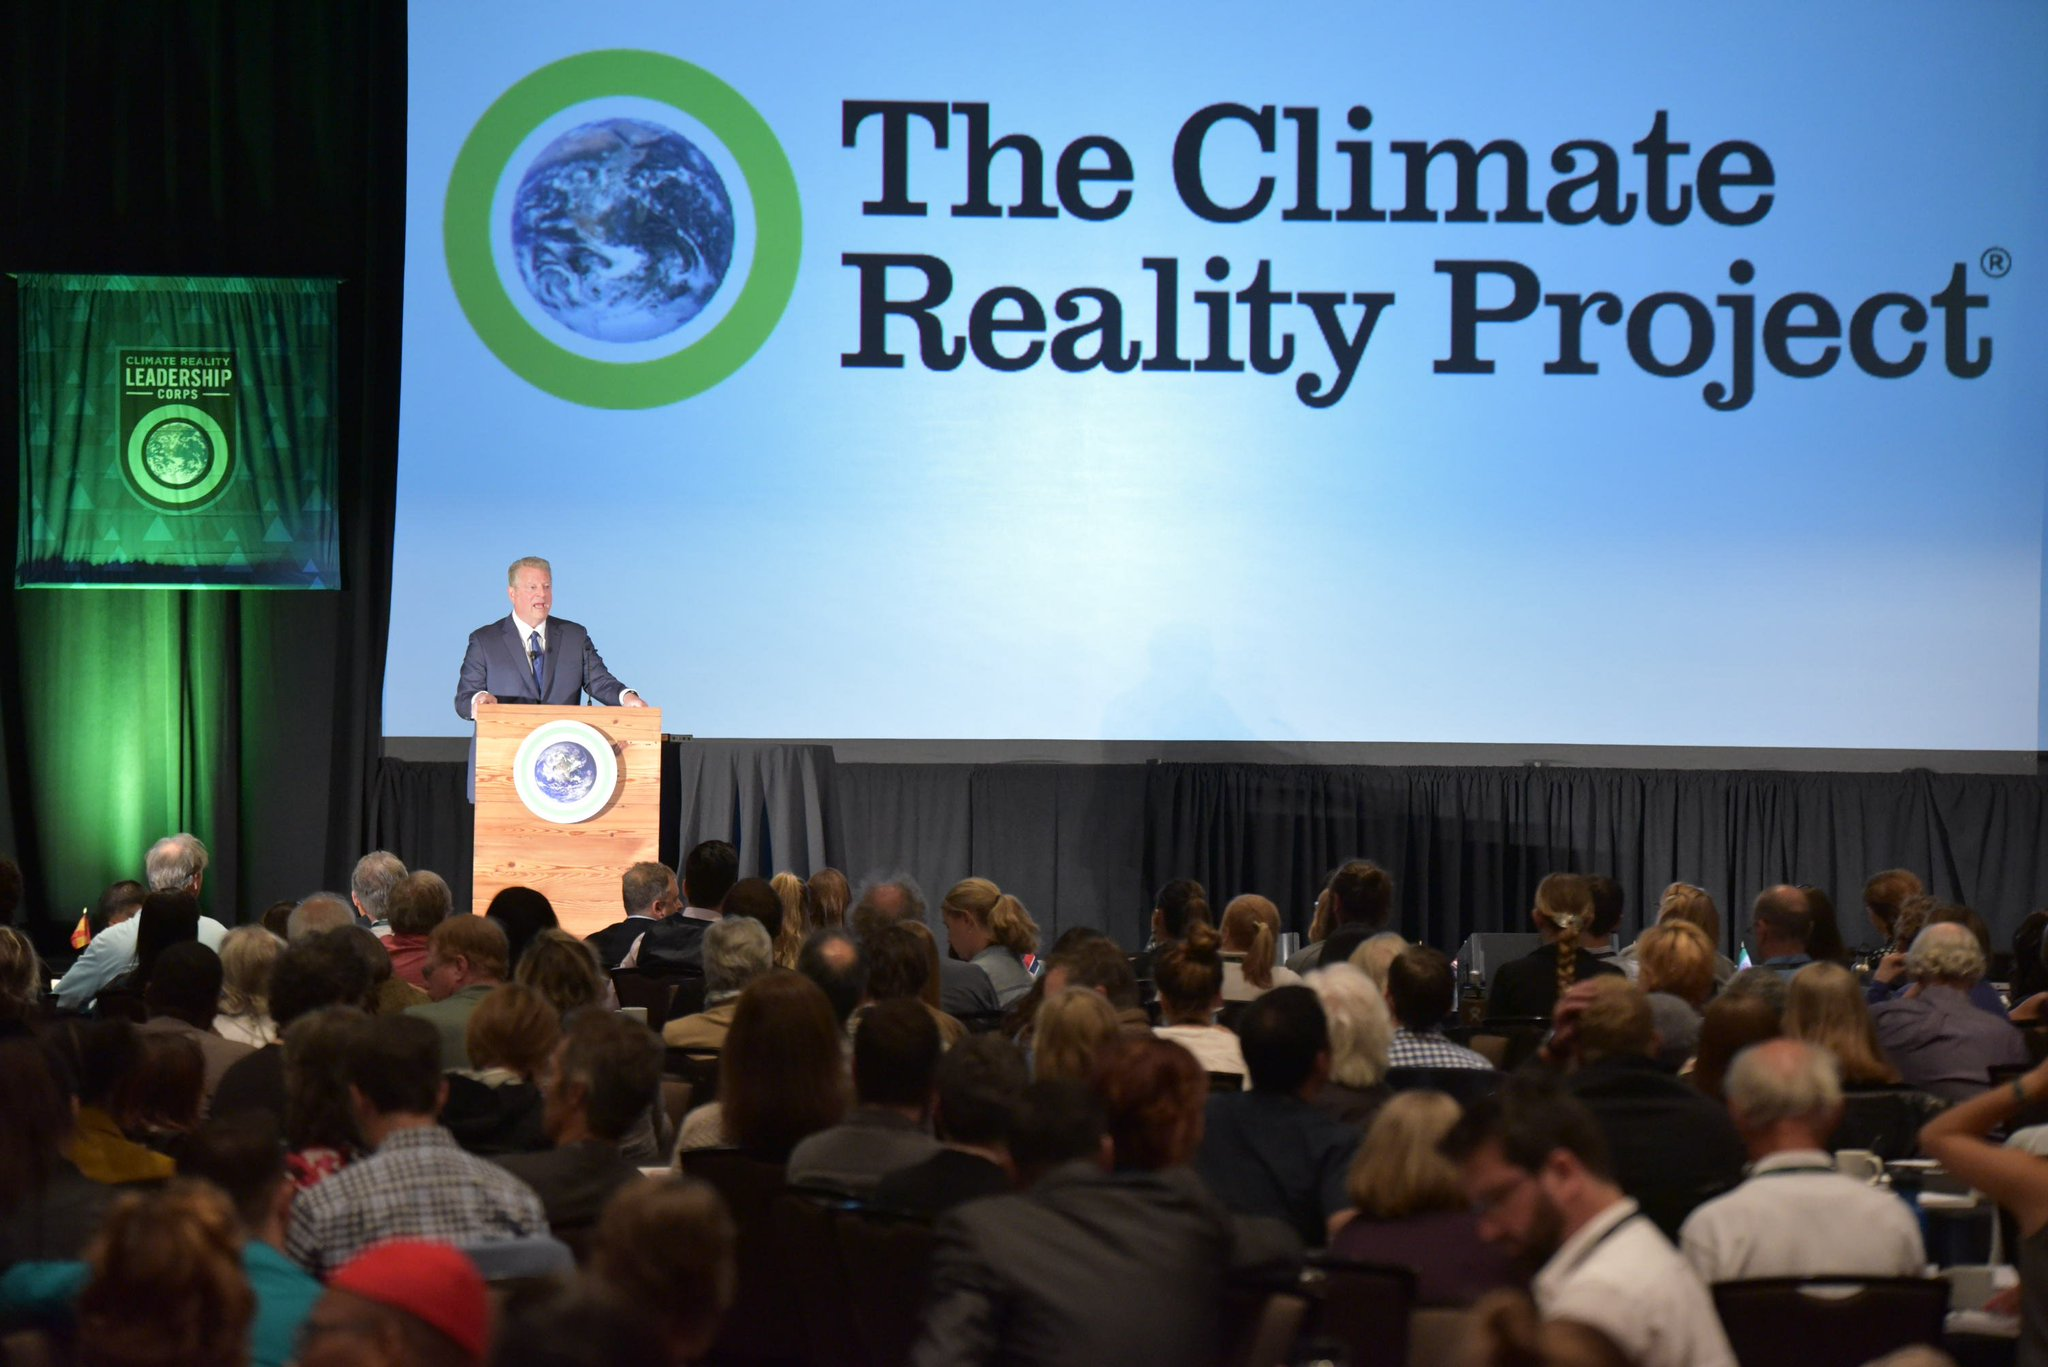 Enjoying my time here in Seattle, WA at this week's @ClimateReality Leadership Training! #LeadOnClimate https://t.co/0hLMyZoB3M